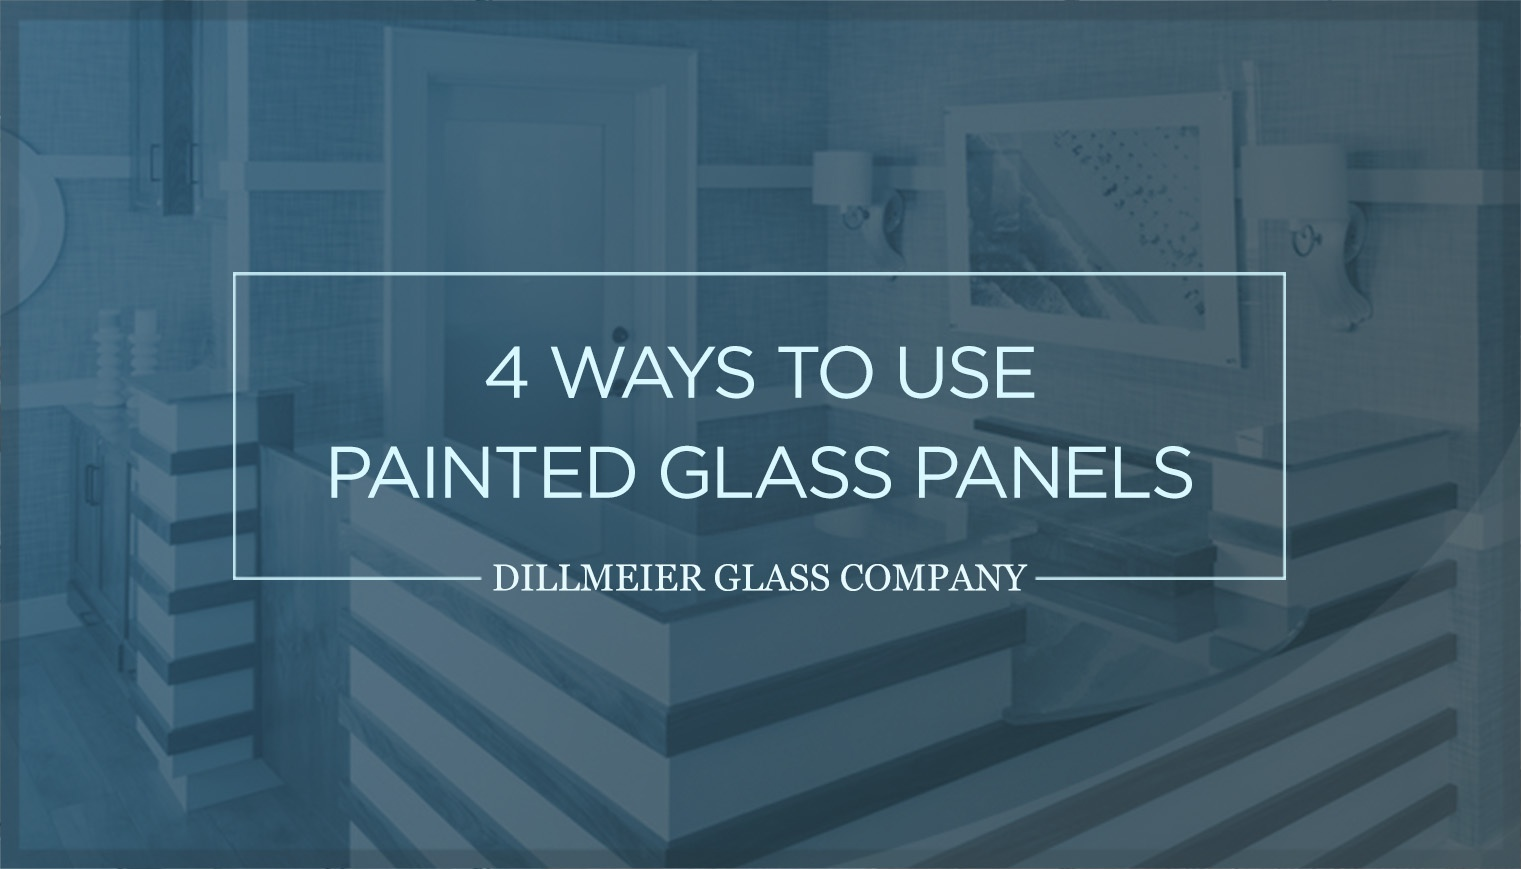 4 Ways to Use Painted Glass Panels